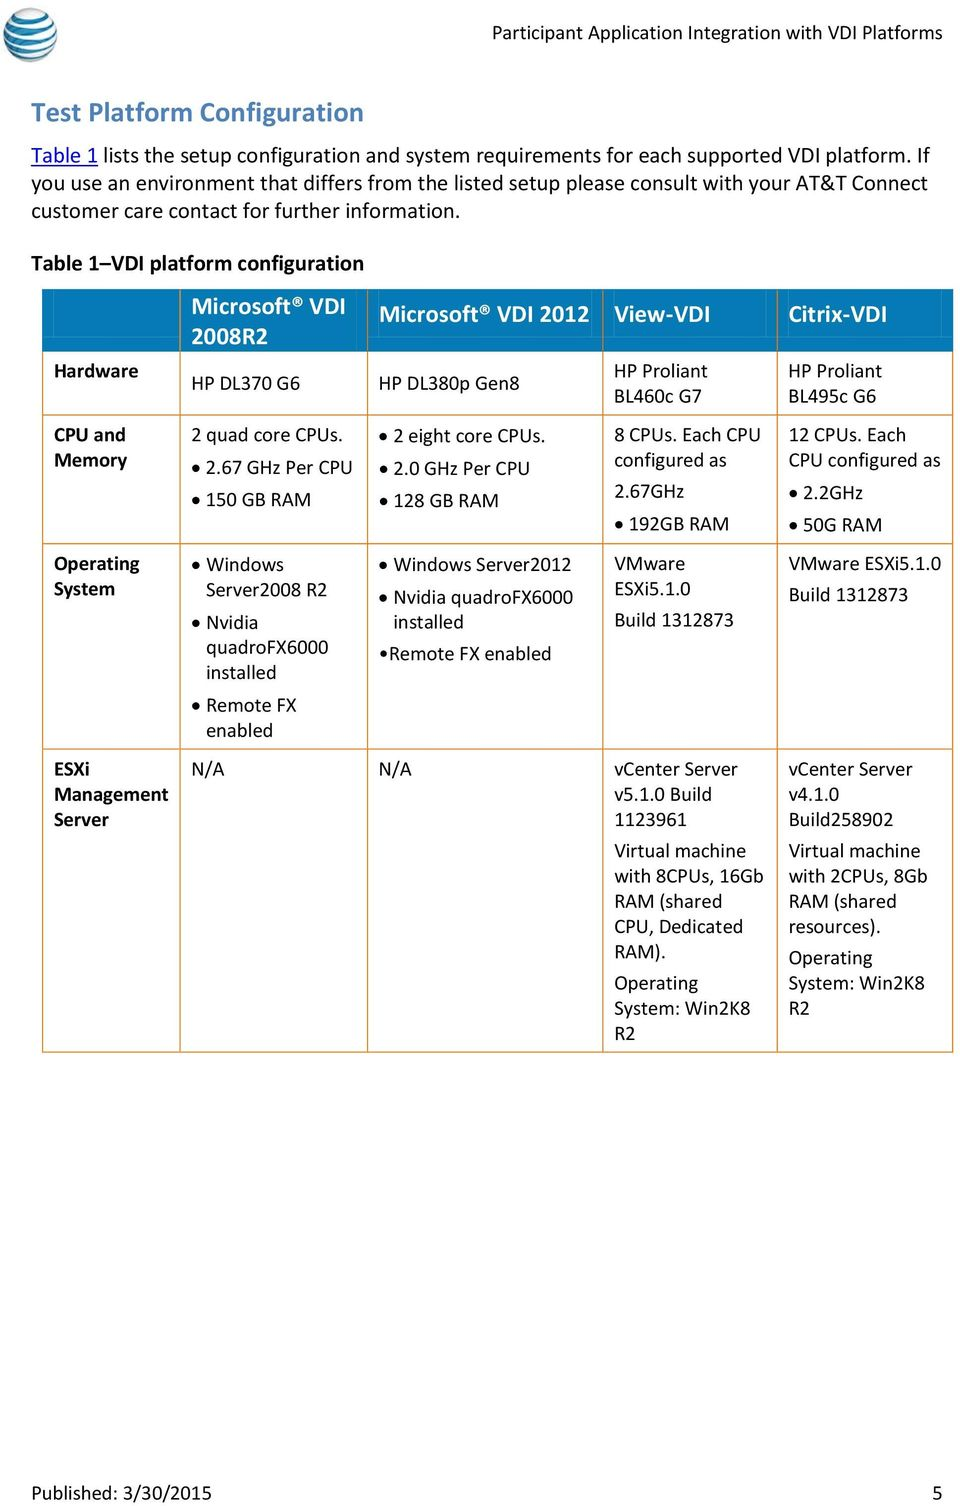 Table 1 platform configuration Hardware Microsoft 2008R2 HP DL370 G6 Microsoft 2012 View- Citrix- HP DL380p Gen8 HP Proliant BL460c G7 HP Proliant BL495c G6 CPU and Memory 2 quad core CPUs. 2.67 GHz Per CPU 150 GB RAM 2 eight core CPUs.